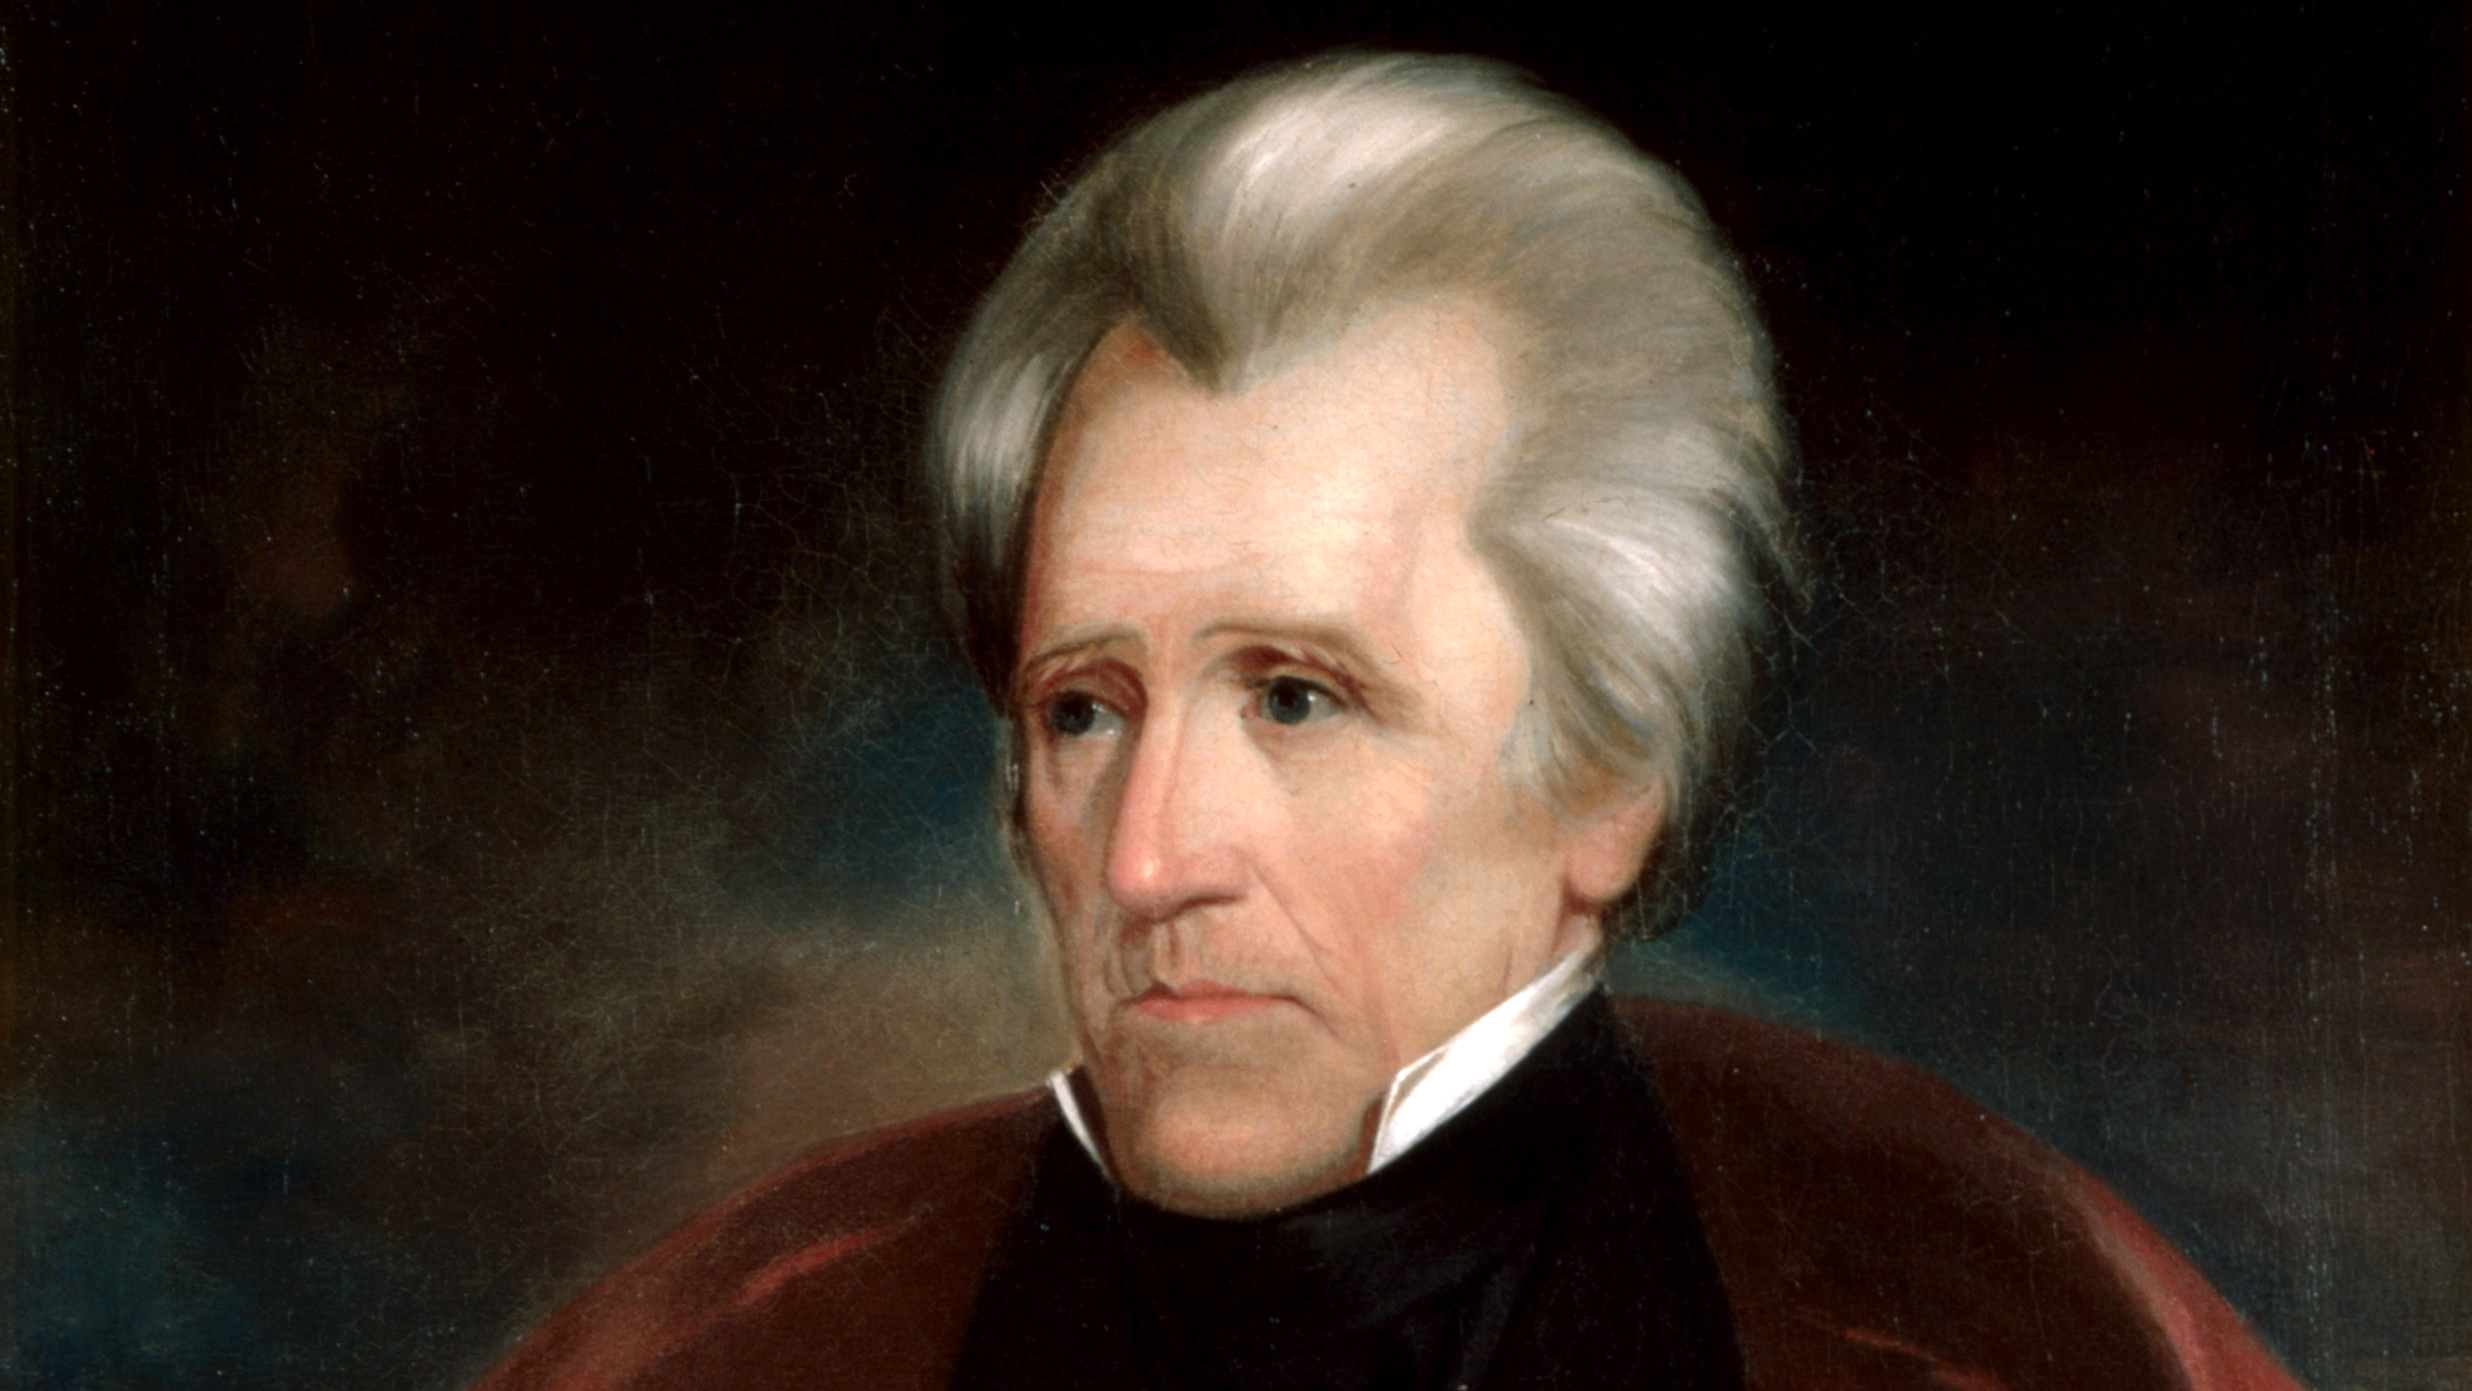 donald trump compared to andrew jackson public radio international portrait of andrew jackson the seventh president of the united states by ralph e w earl